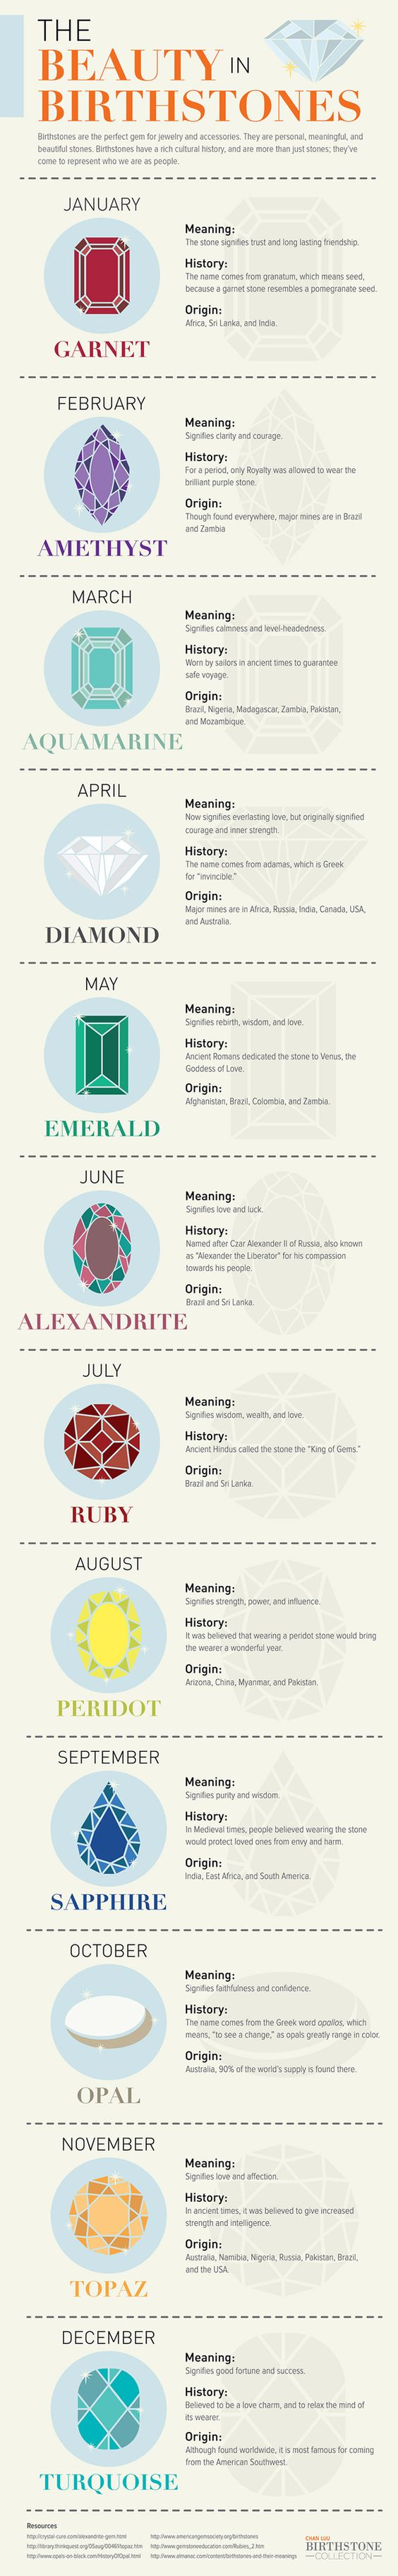 The Beauty of Birthstone Jewelry Awesome birthstone chart showing the meaning, history and origin of your birthstone for your birthday month January, February, March, April, May, June, July, August, September, October, November and December!: